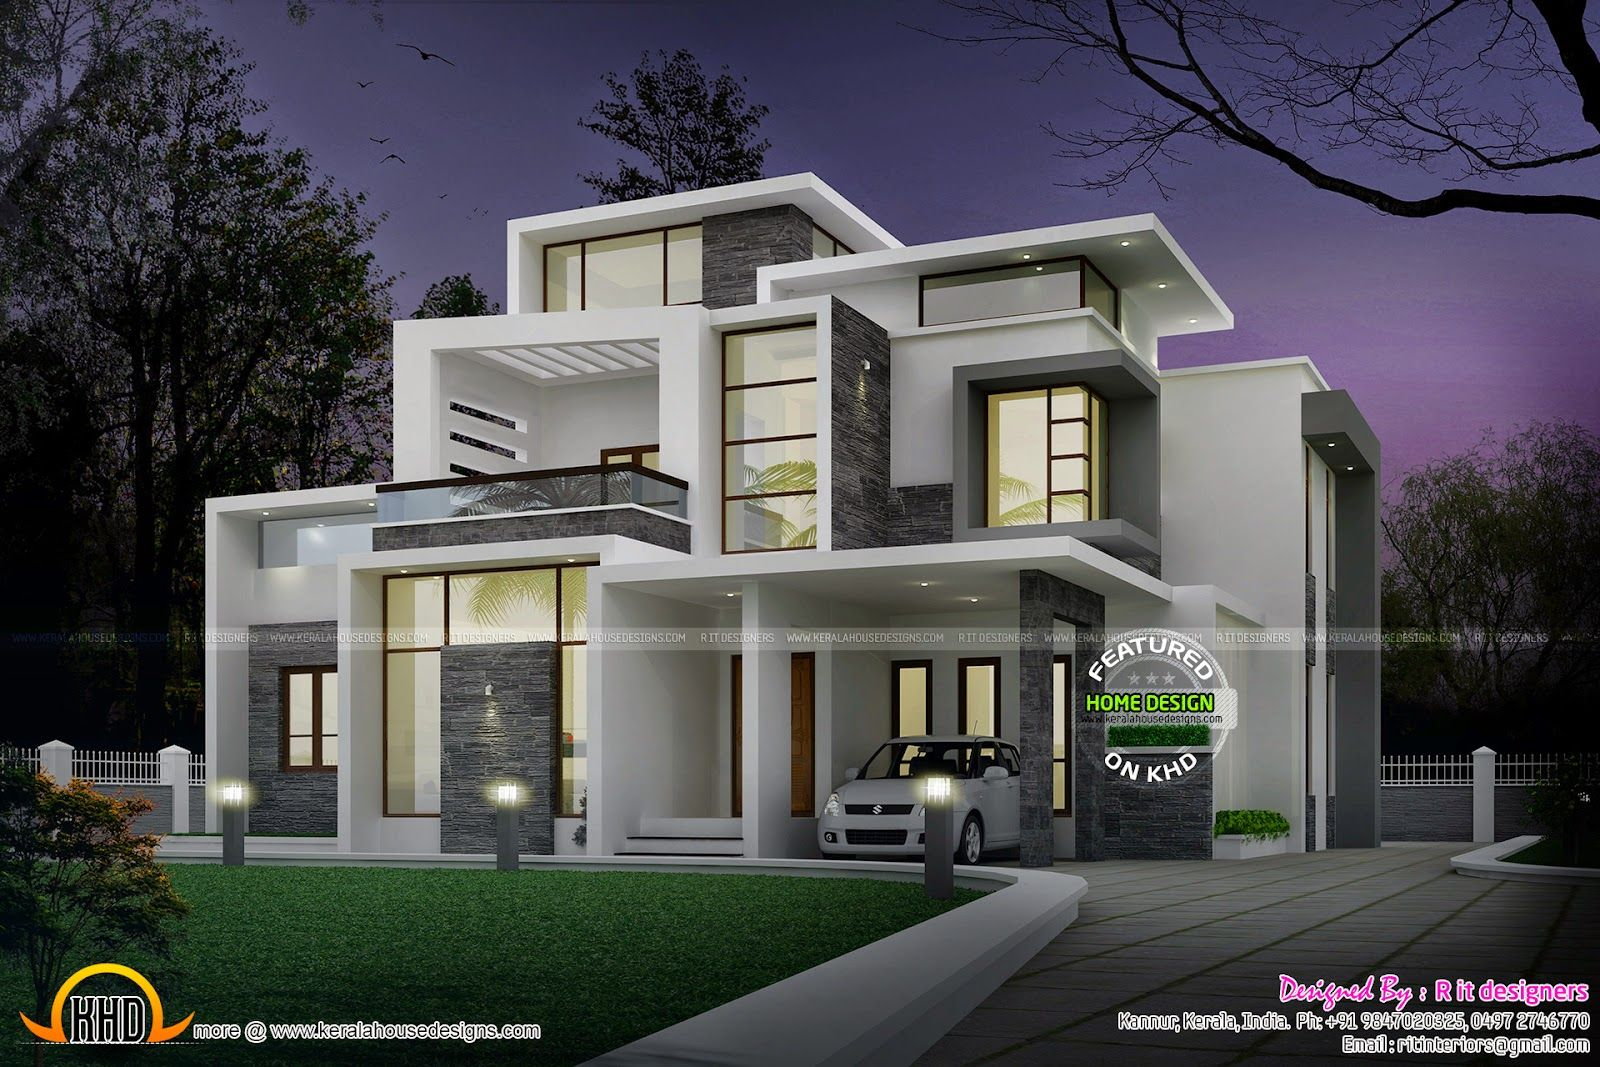 Grand contemporary home design kerala home design and for Contemporary floor plans for new homes